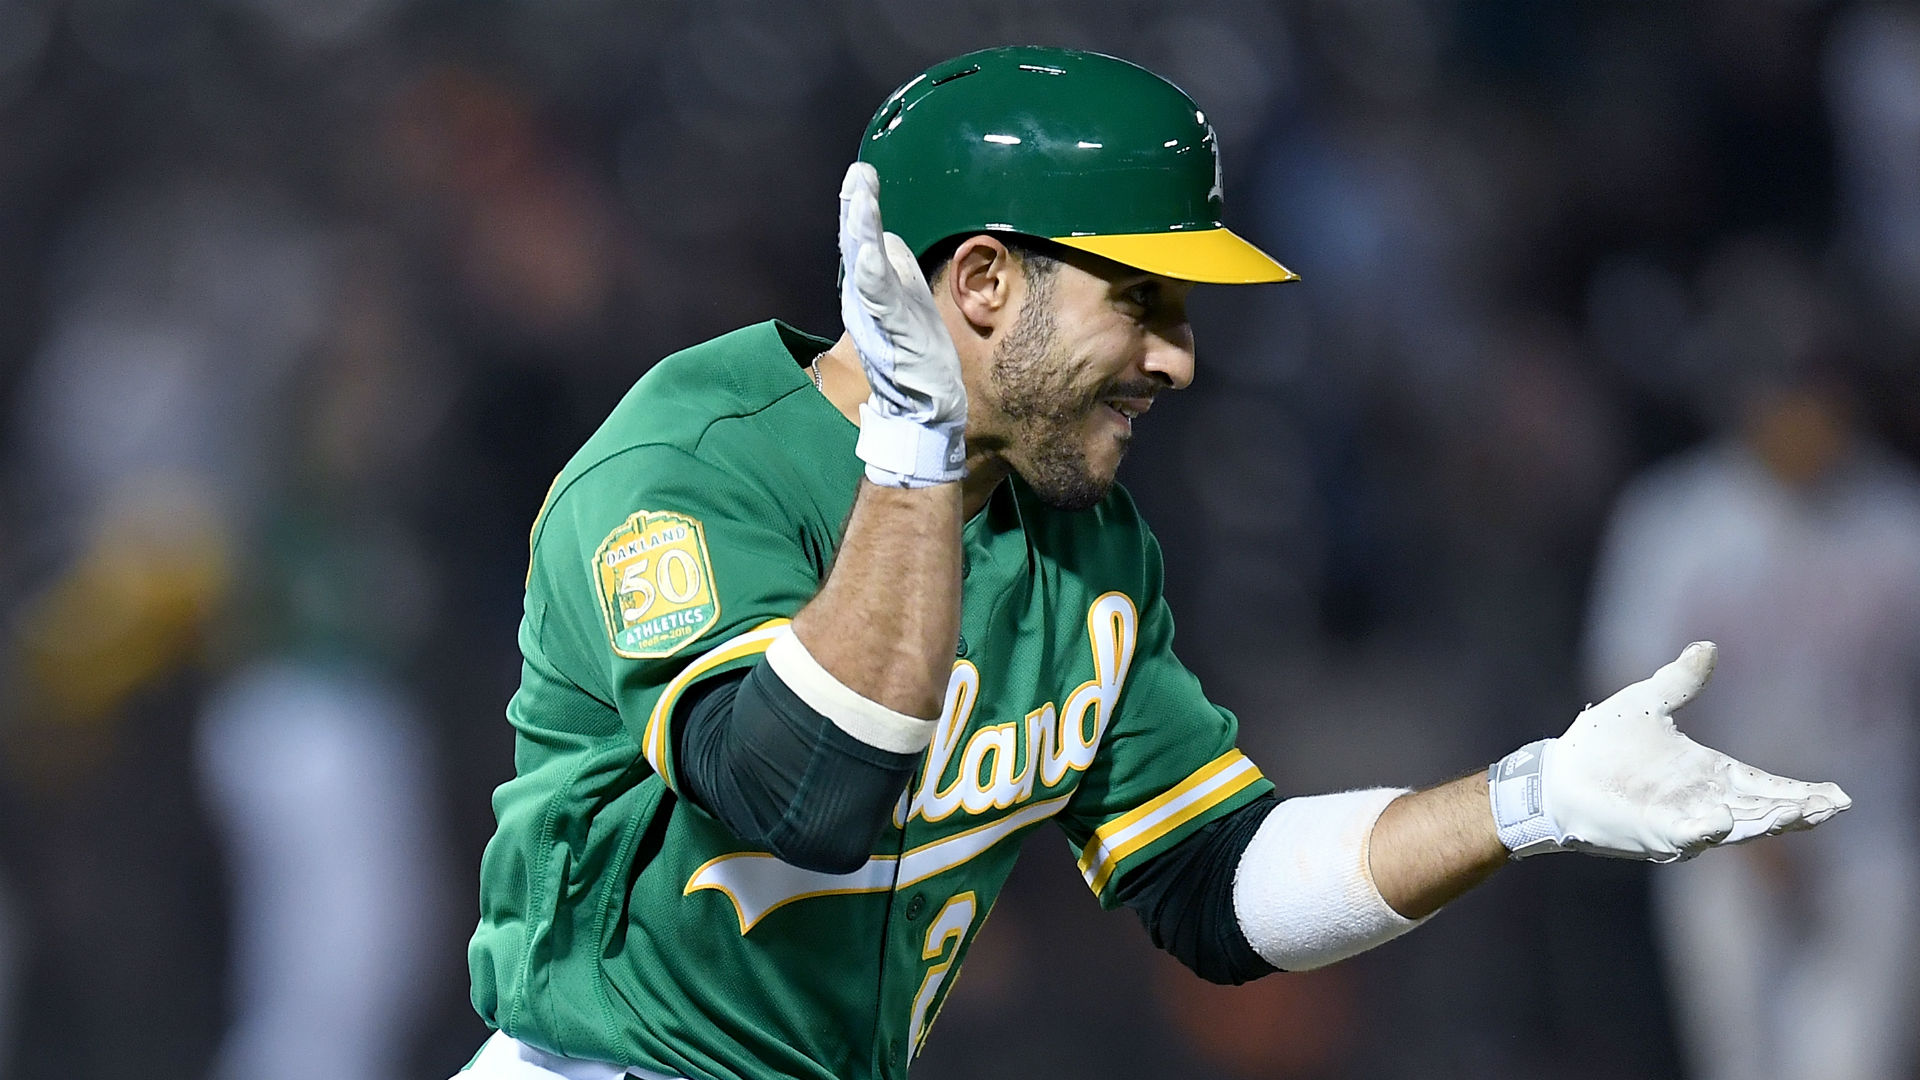 A's Ramon Laureano fires incredible 321-foot throw